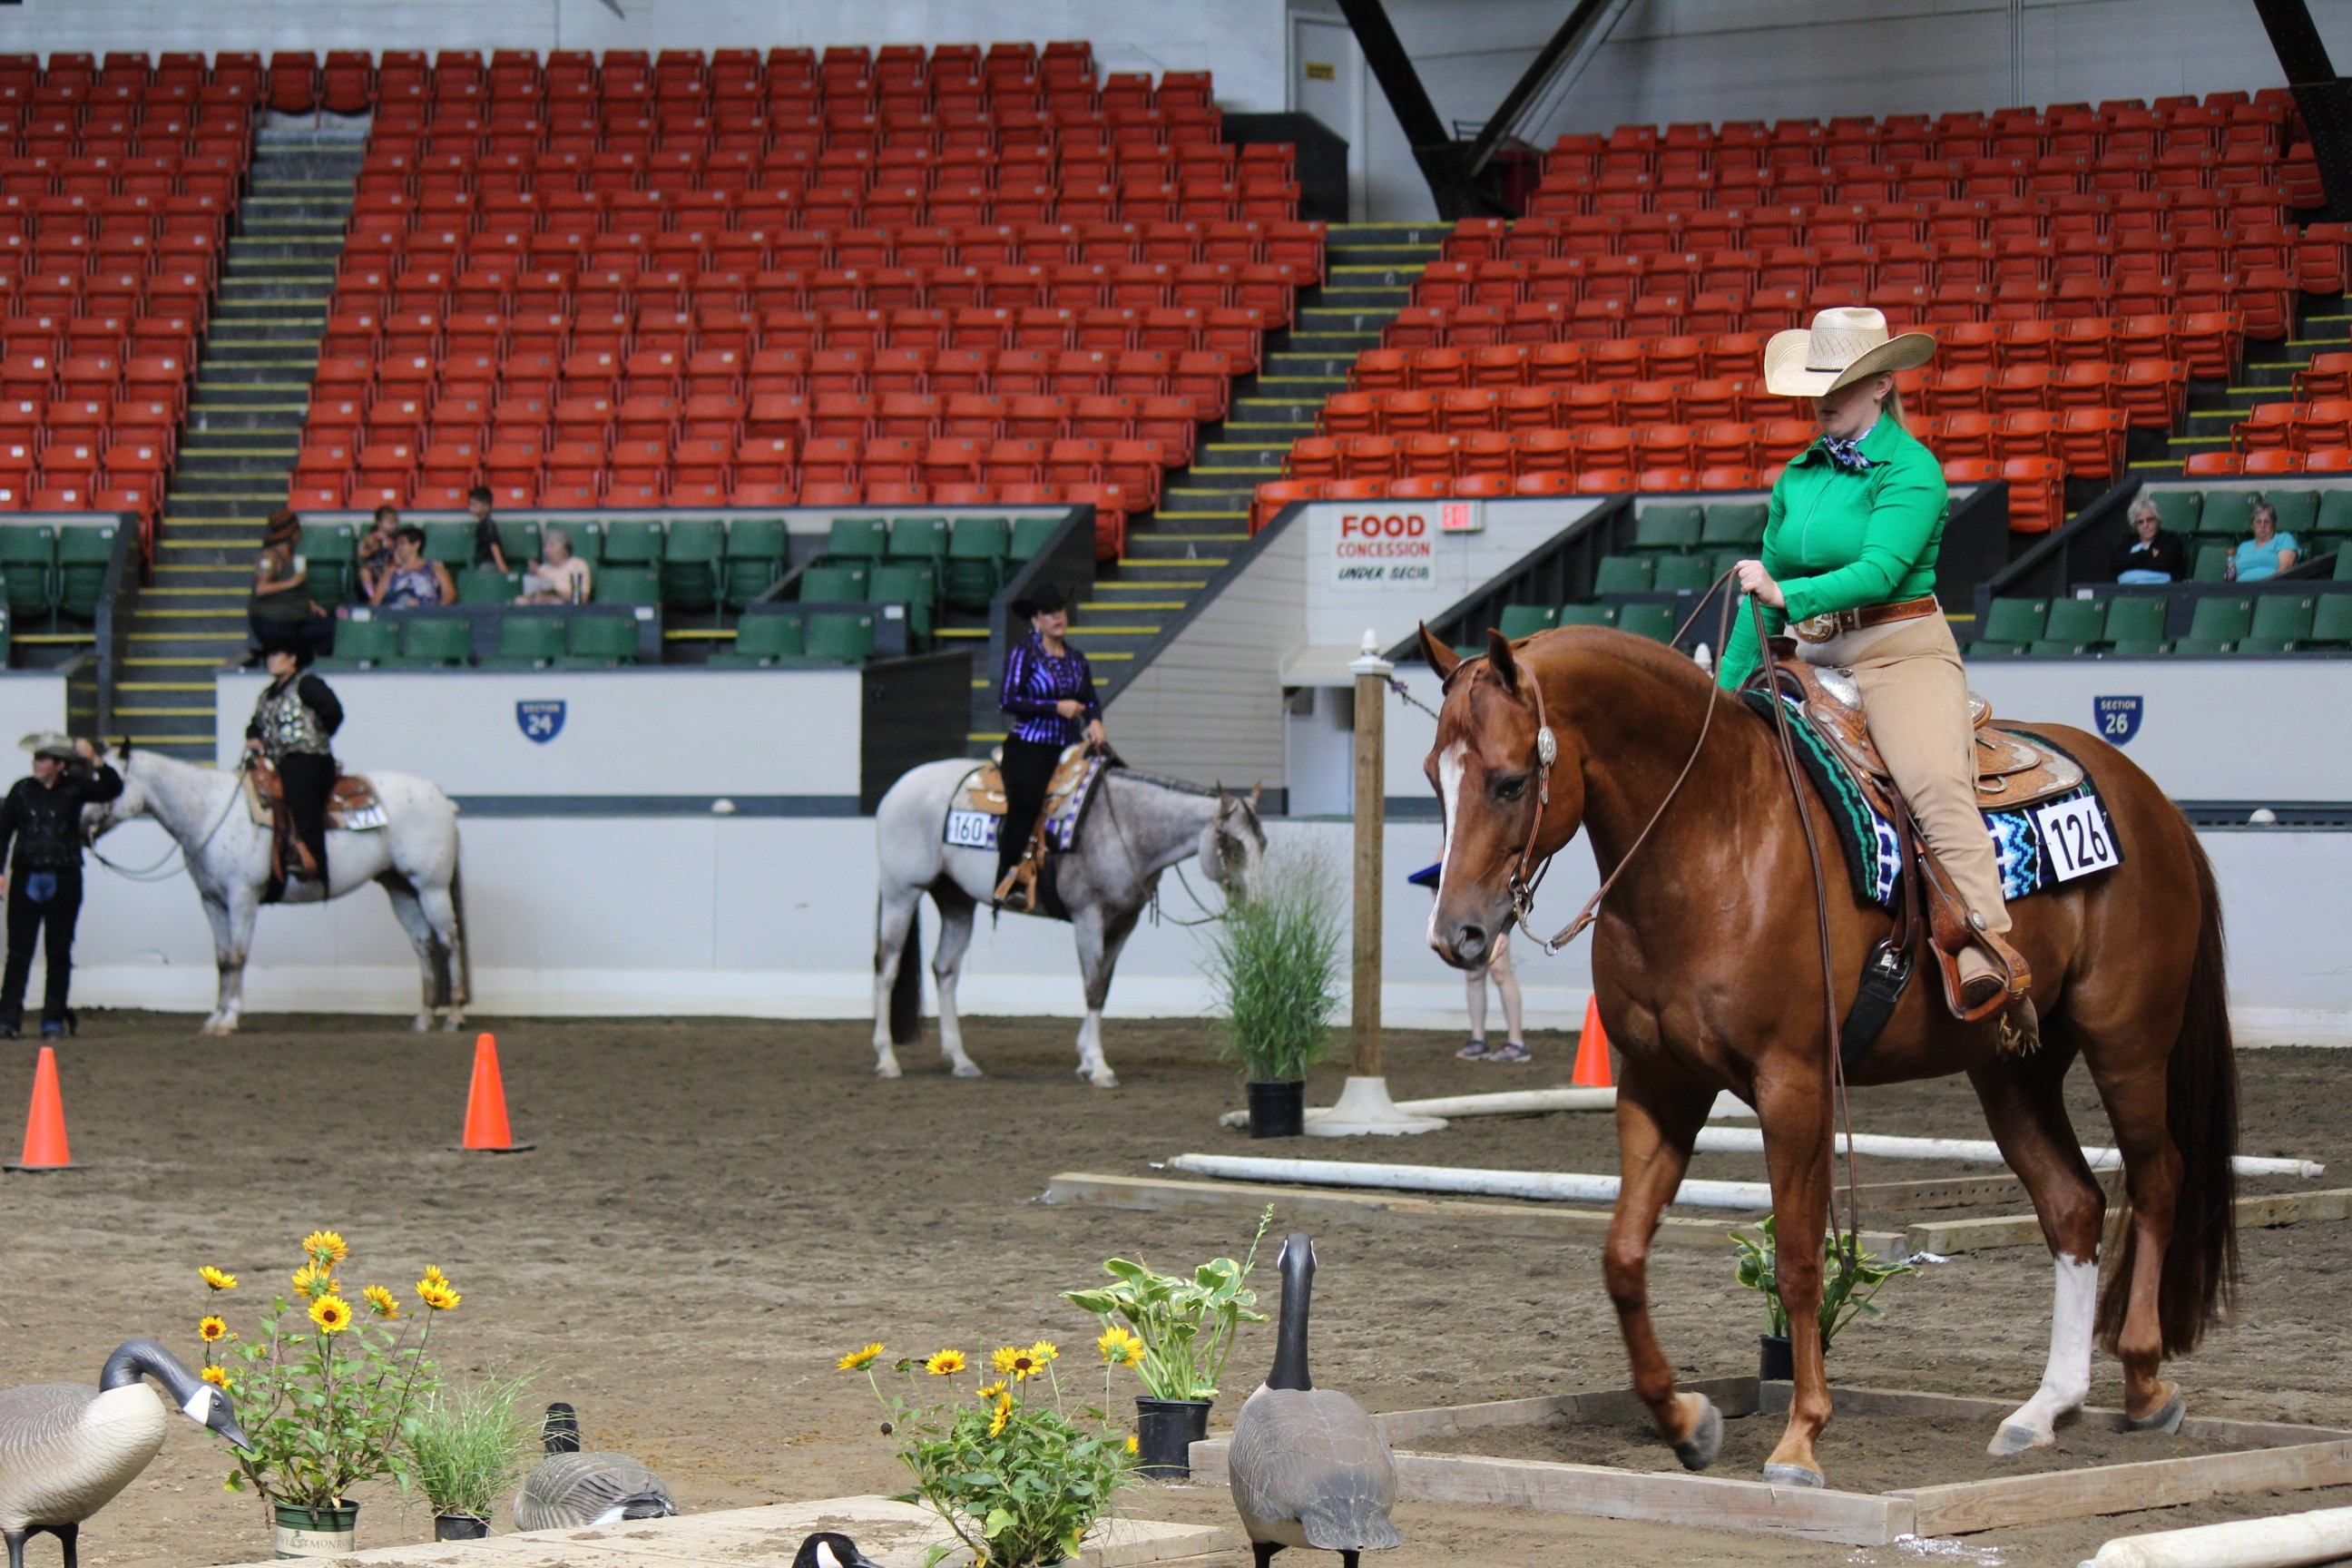 Yankee Color Classic brings horses to the Eastern State Expo